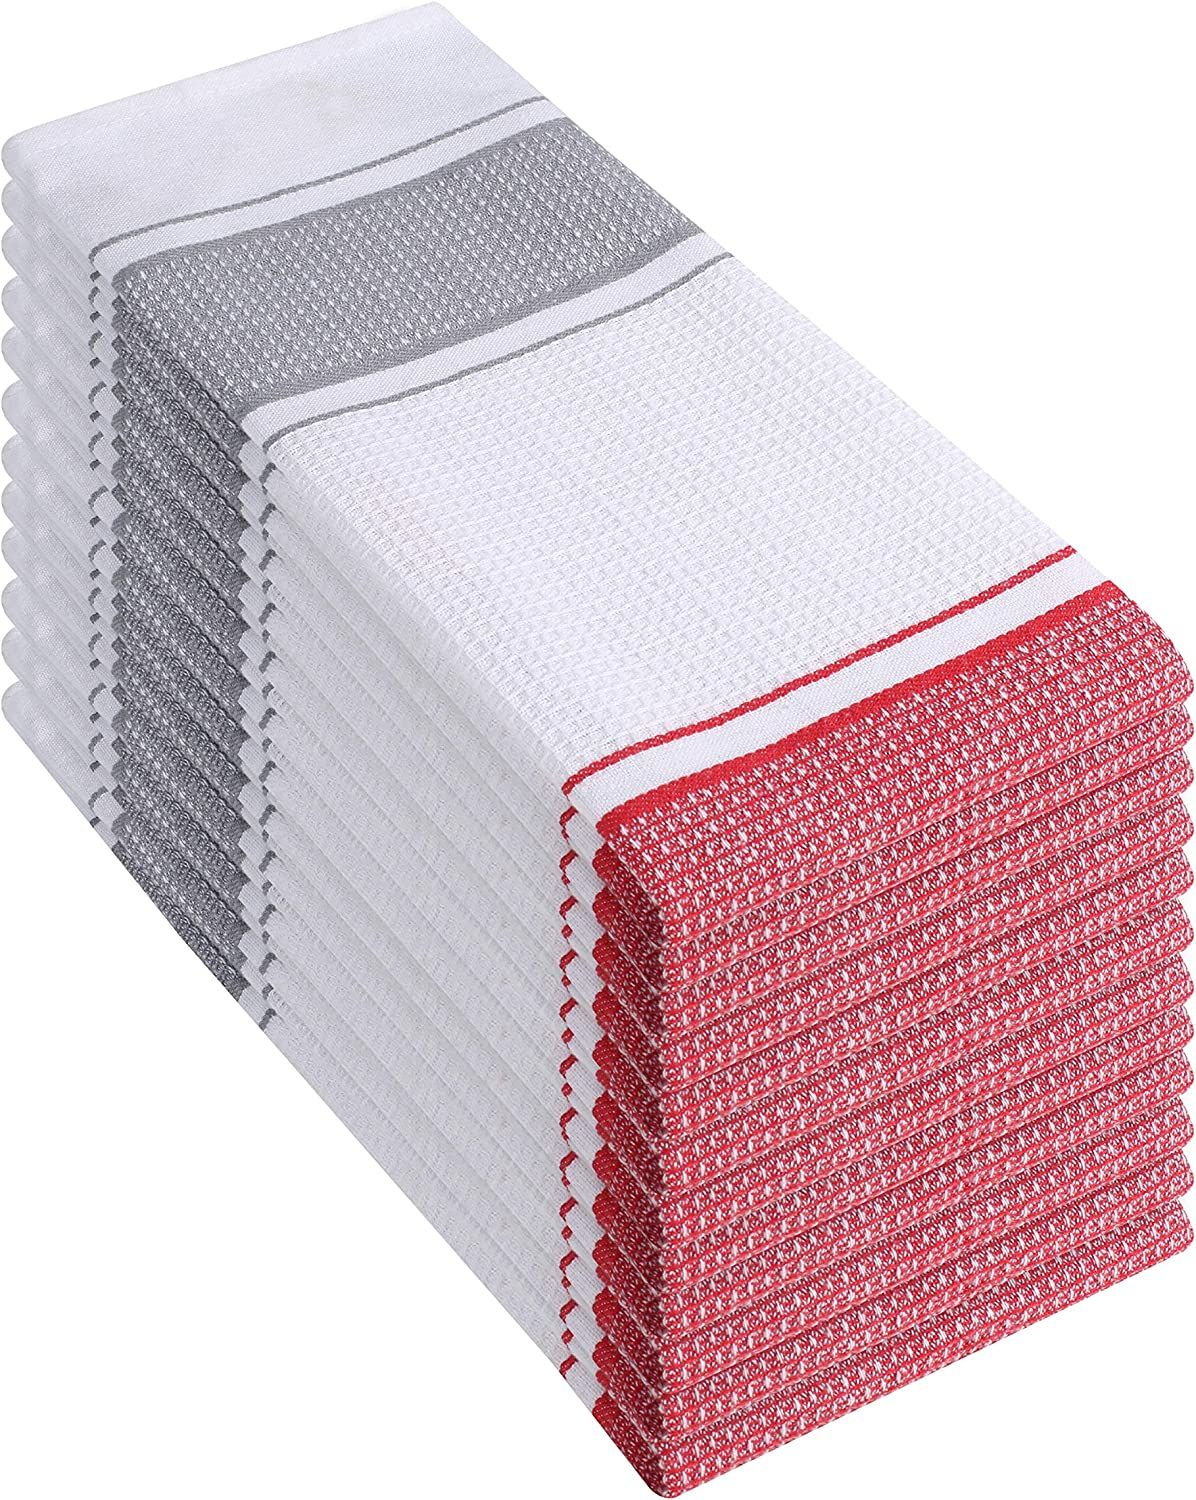 Elvana Home 12 Pack Kitchen Dish Towels 100% Cotton 16x26 Waffle Stripe, Dish Cloths, Tea Towels, Bar Towels, Durable Machine Washable Ultra-Absorbent Kitchen Towels with Hanging Loop, Red White